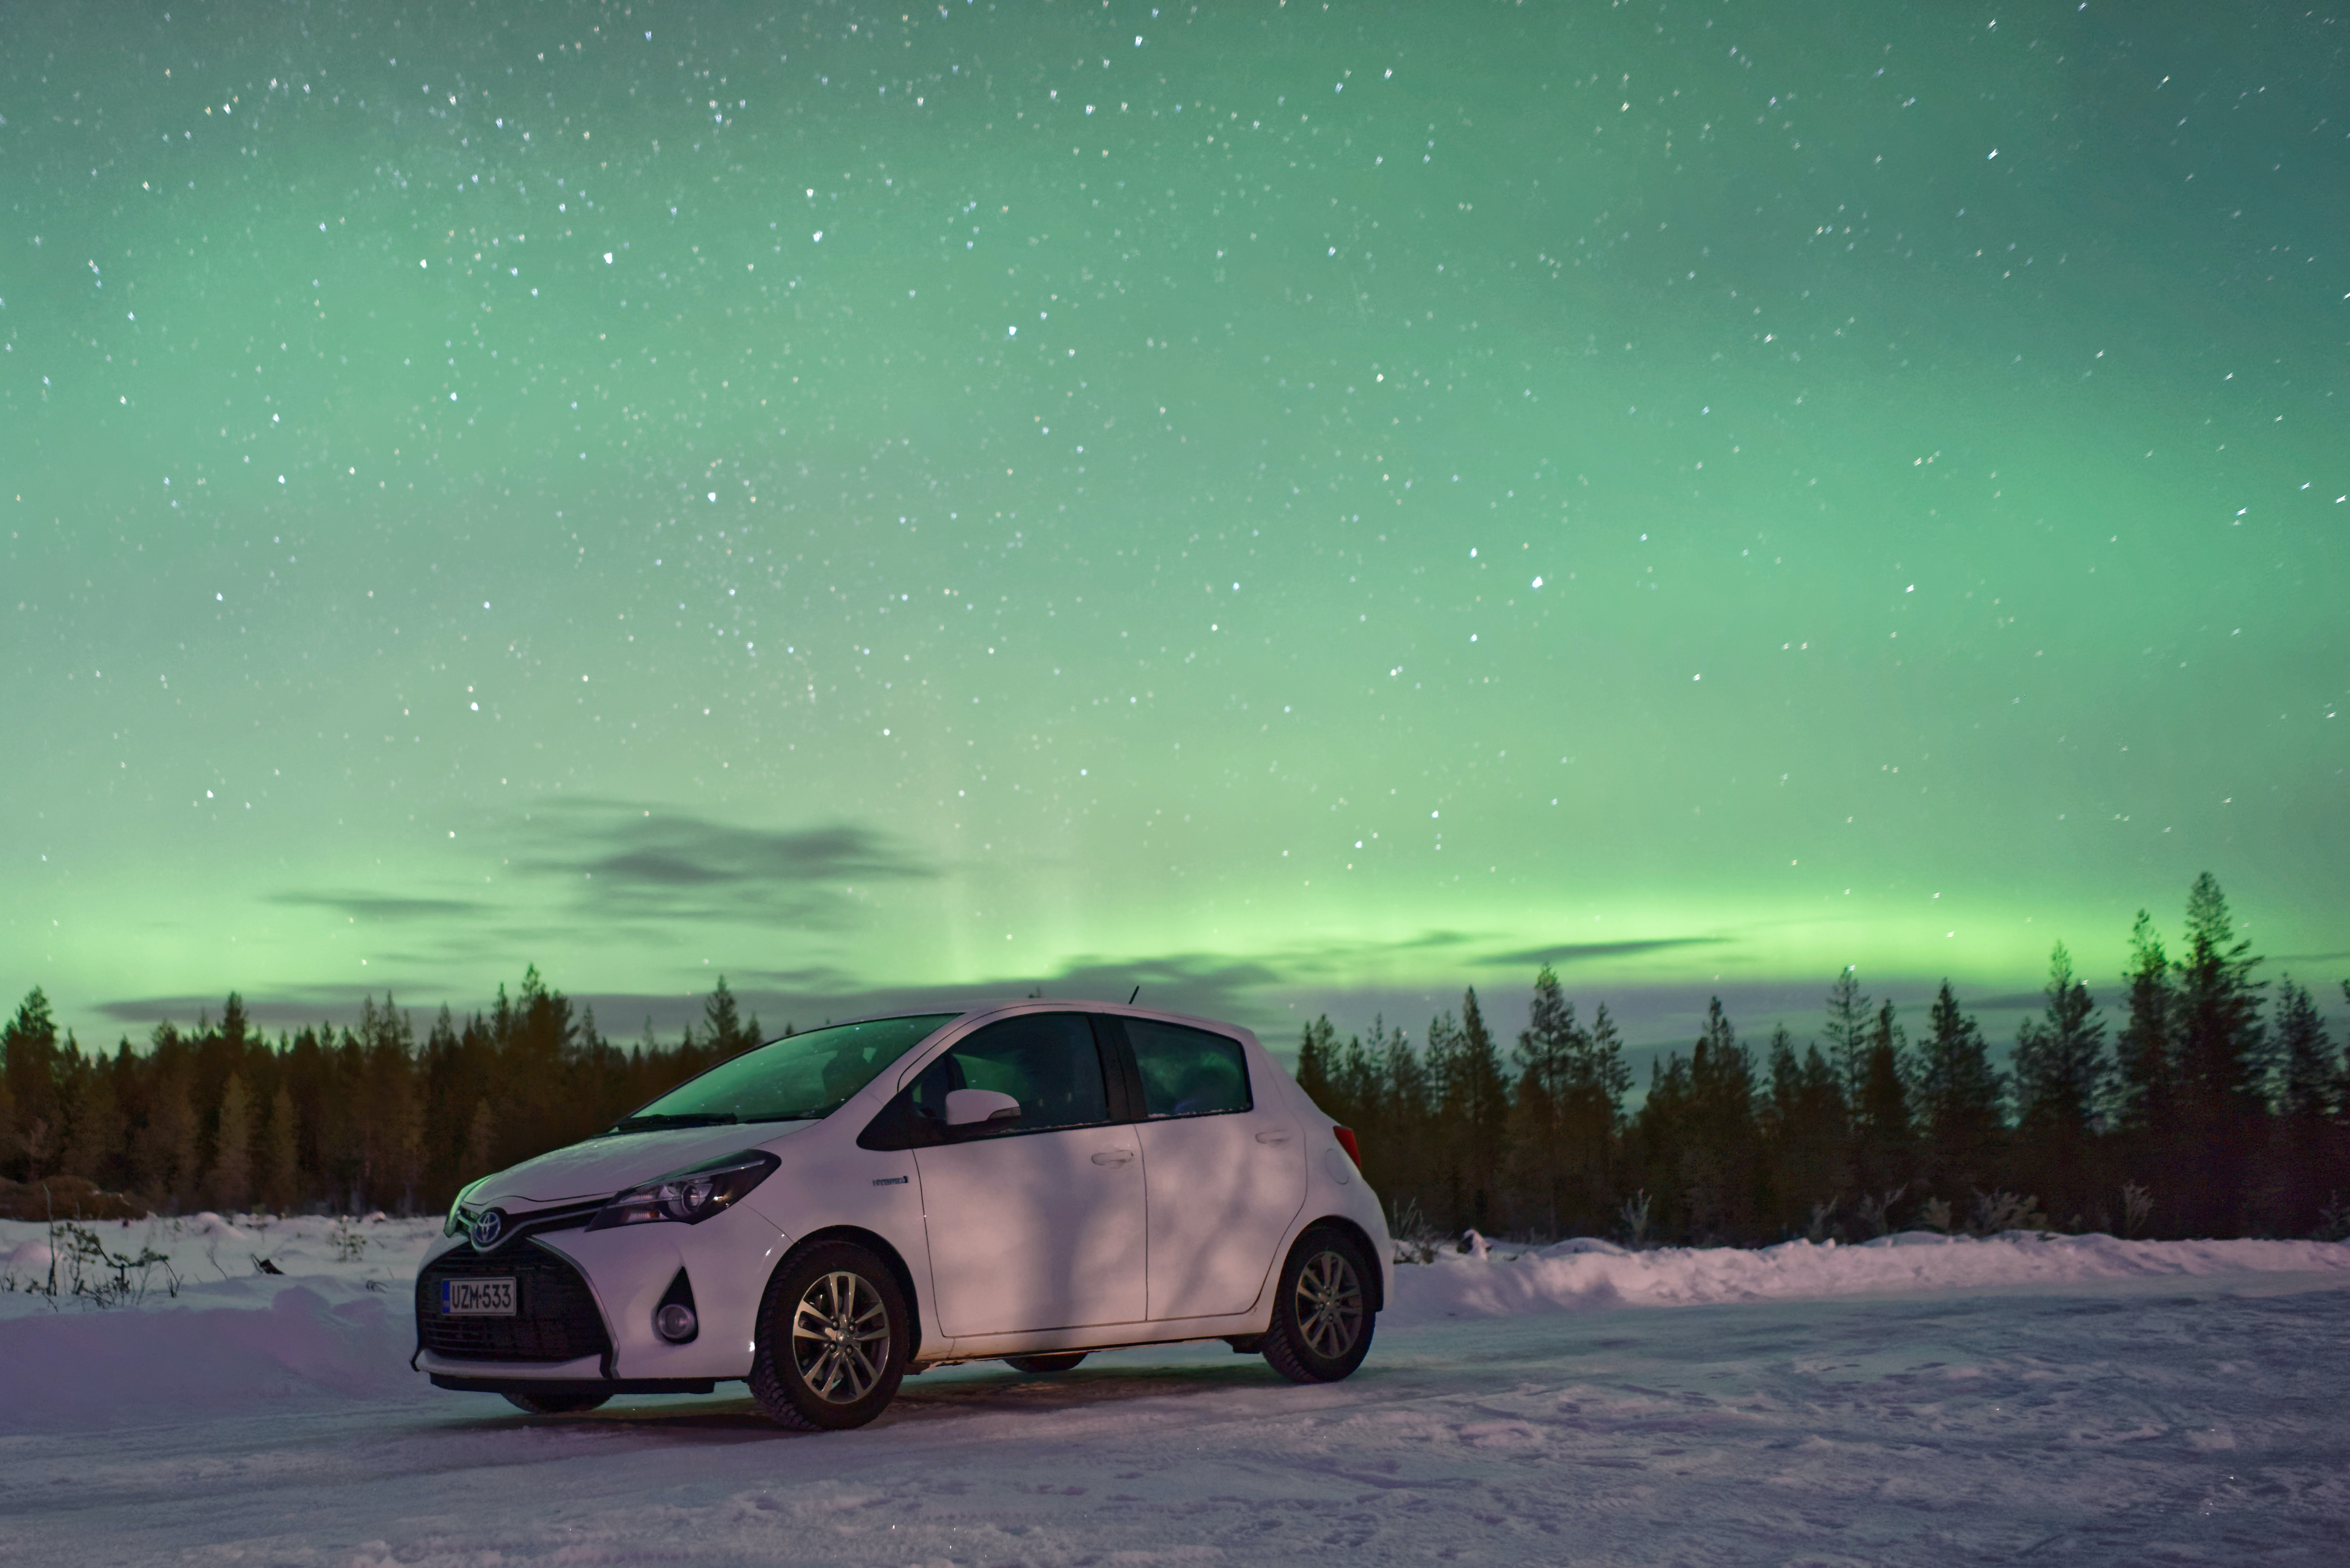 A newer white hatchback parked in the snow with a bright Aurora Boreali in the sky above